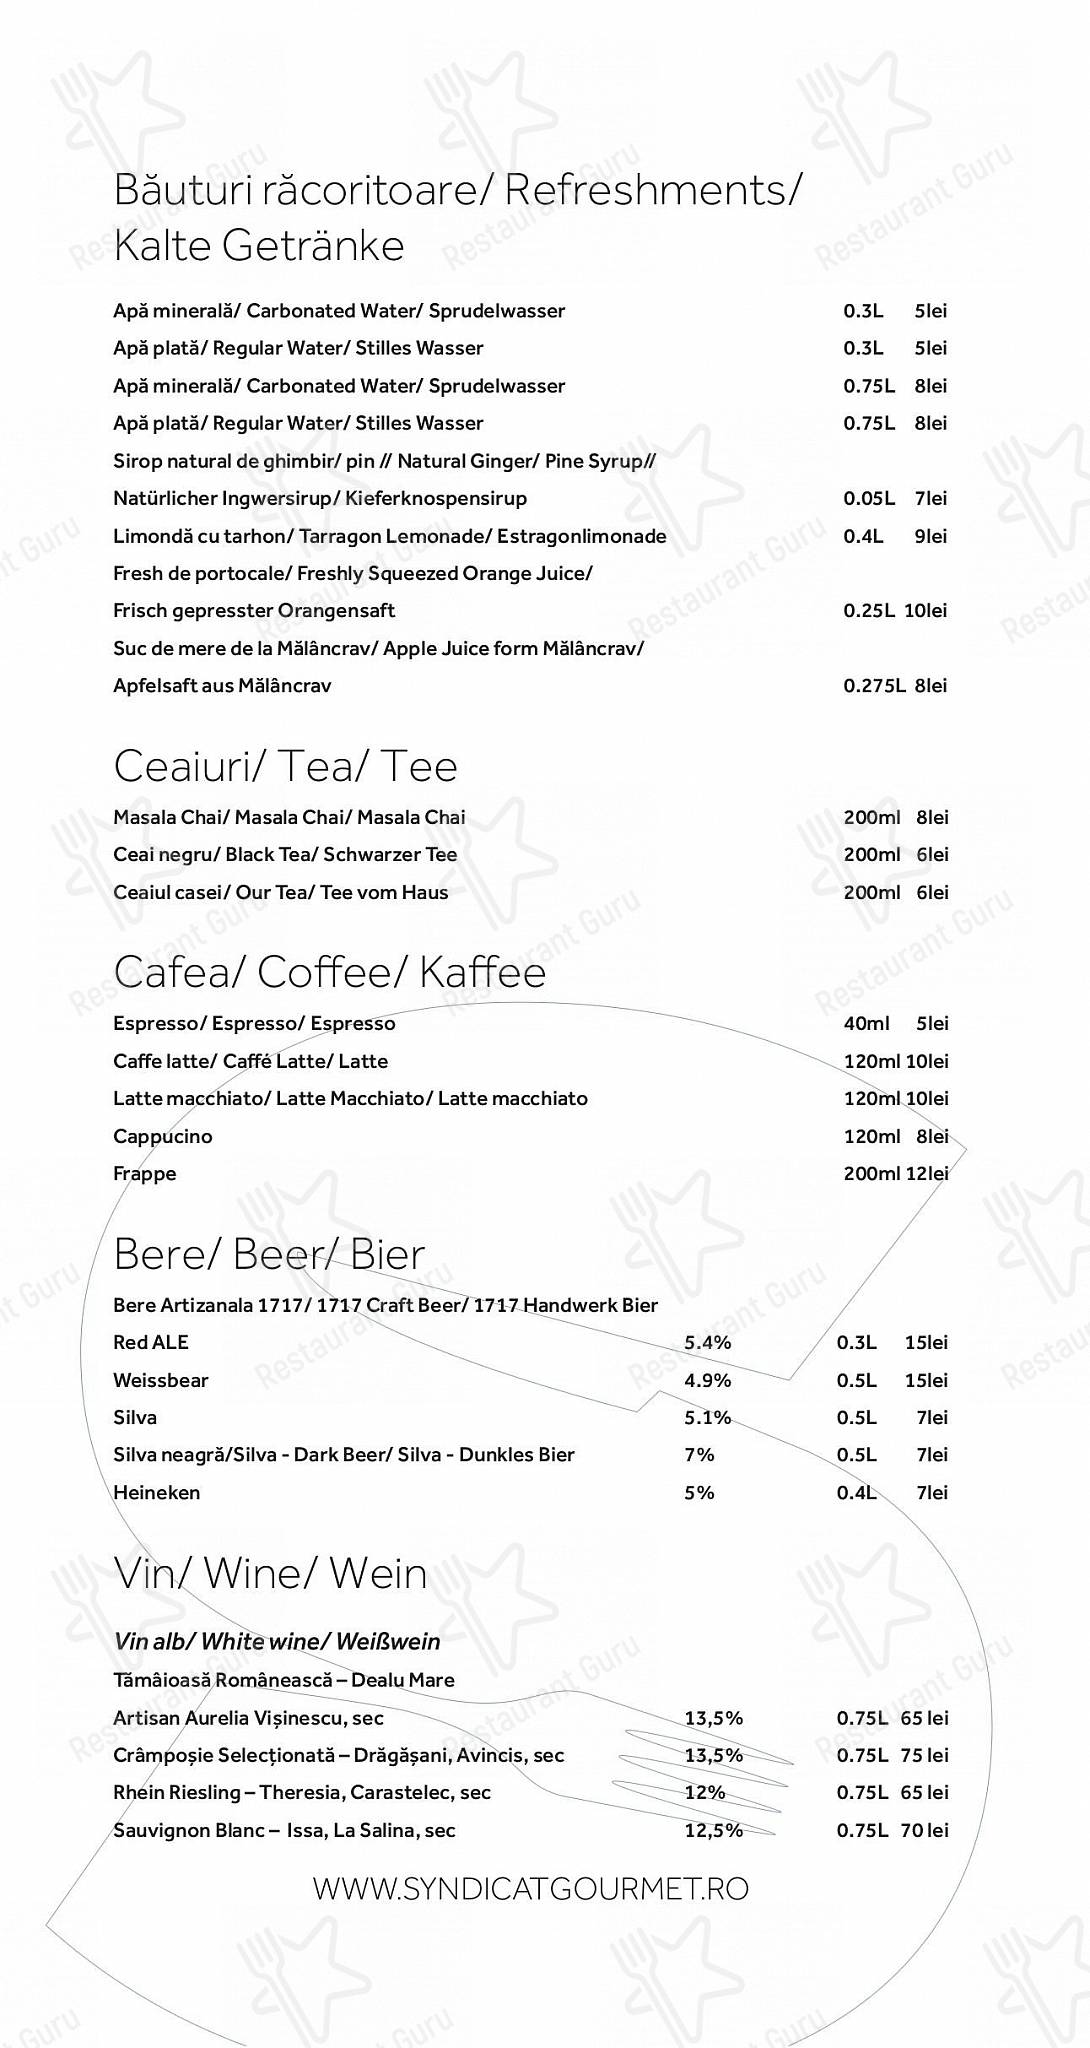 Syndicat Gourmet menu - dishes and beverages